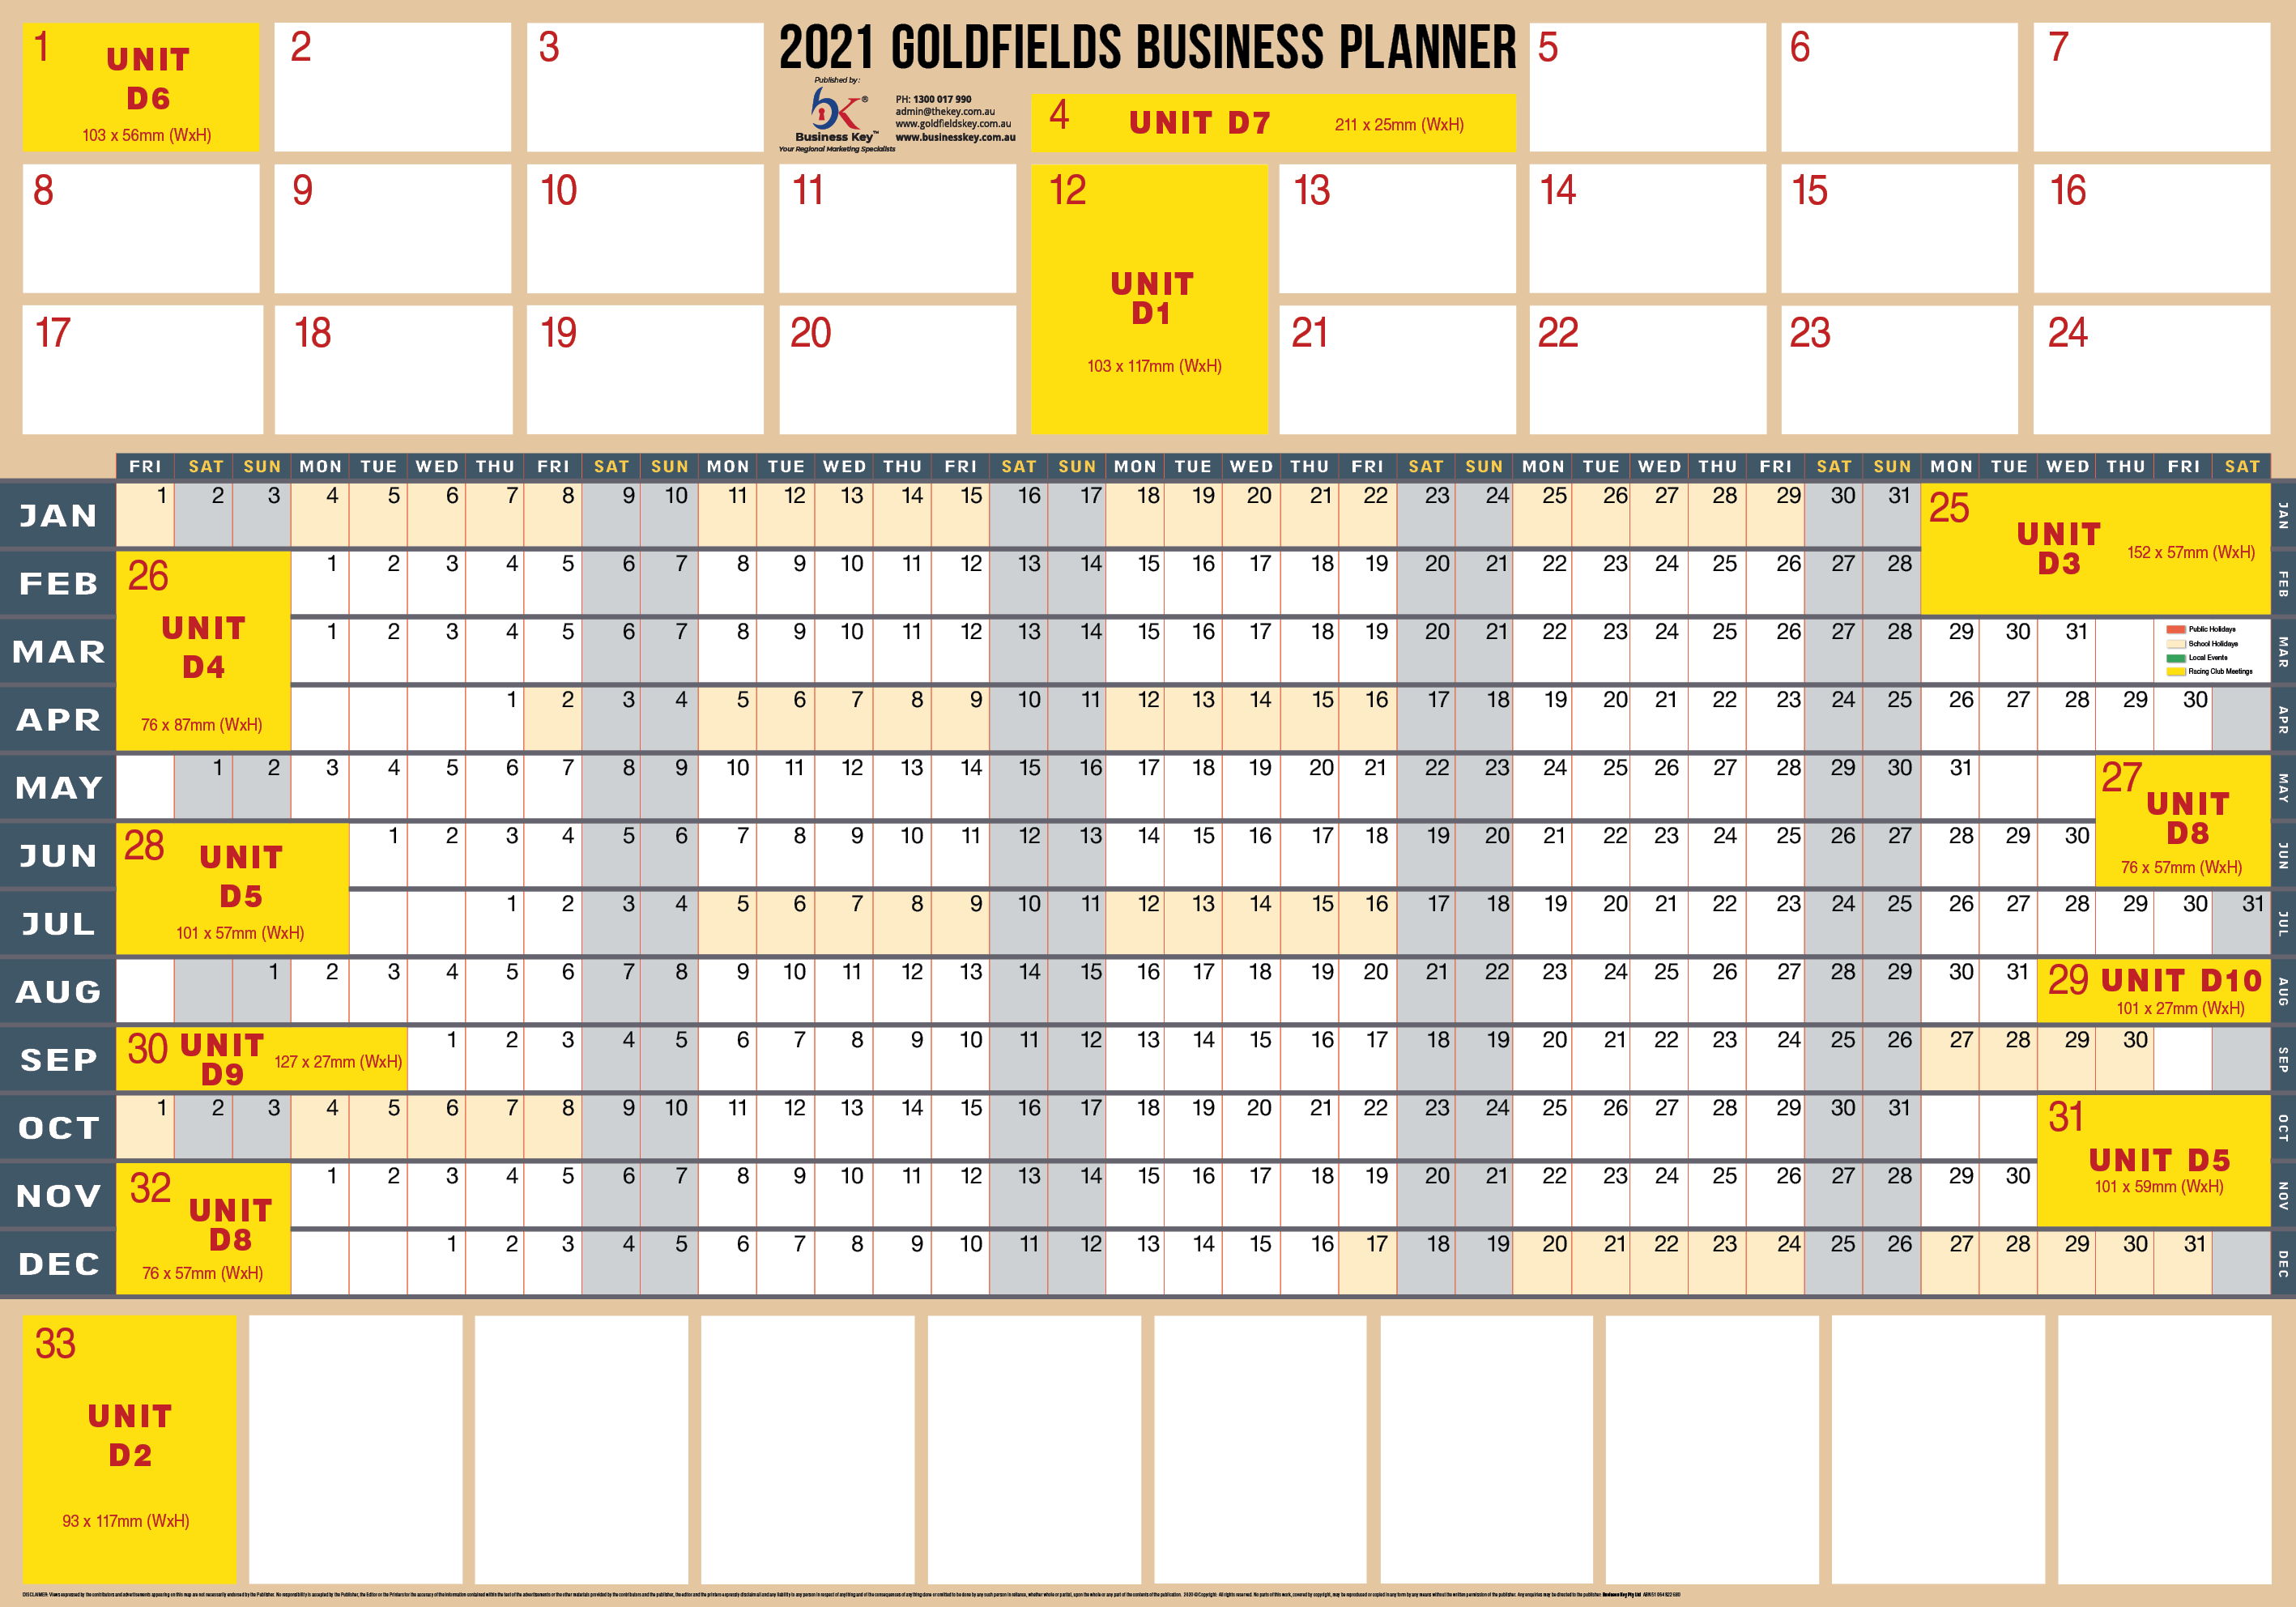 2021 Goldfields Business Planner blank